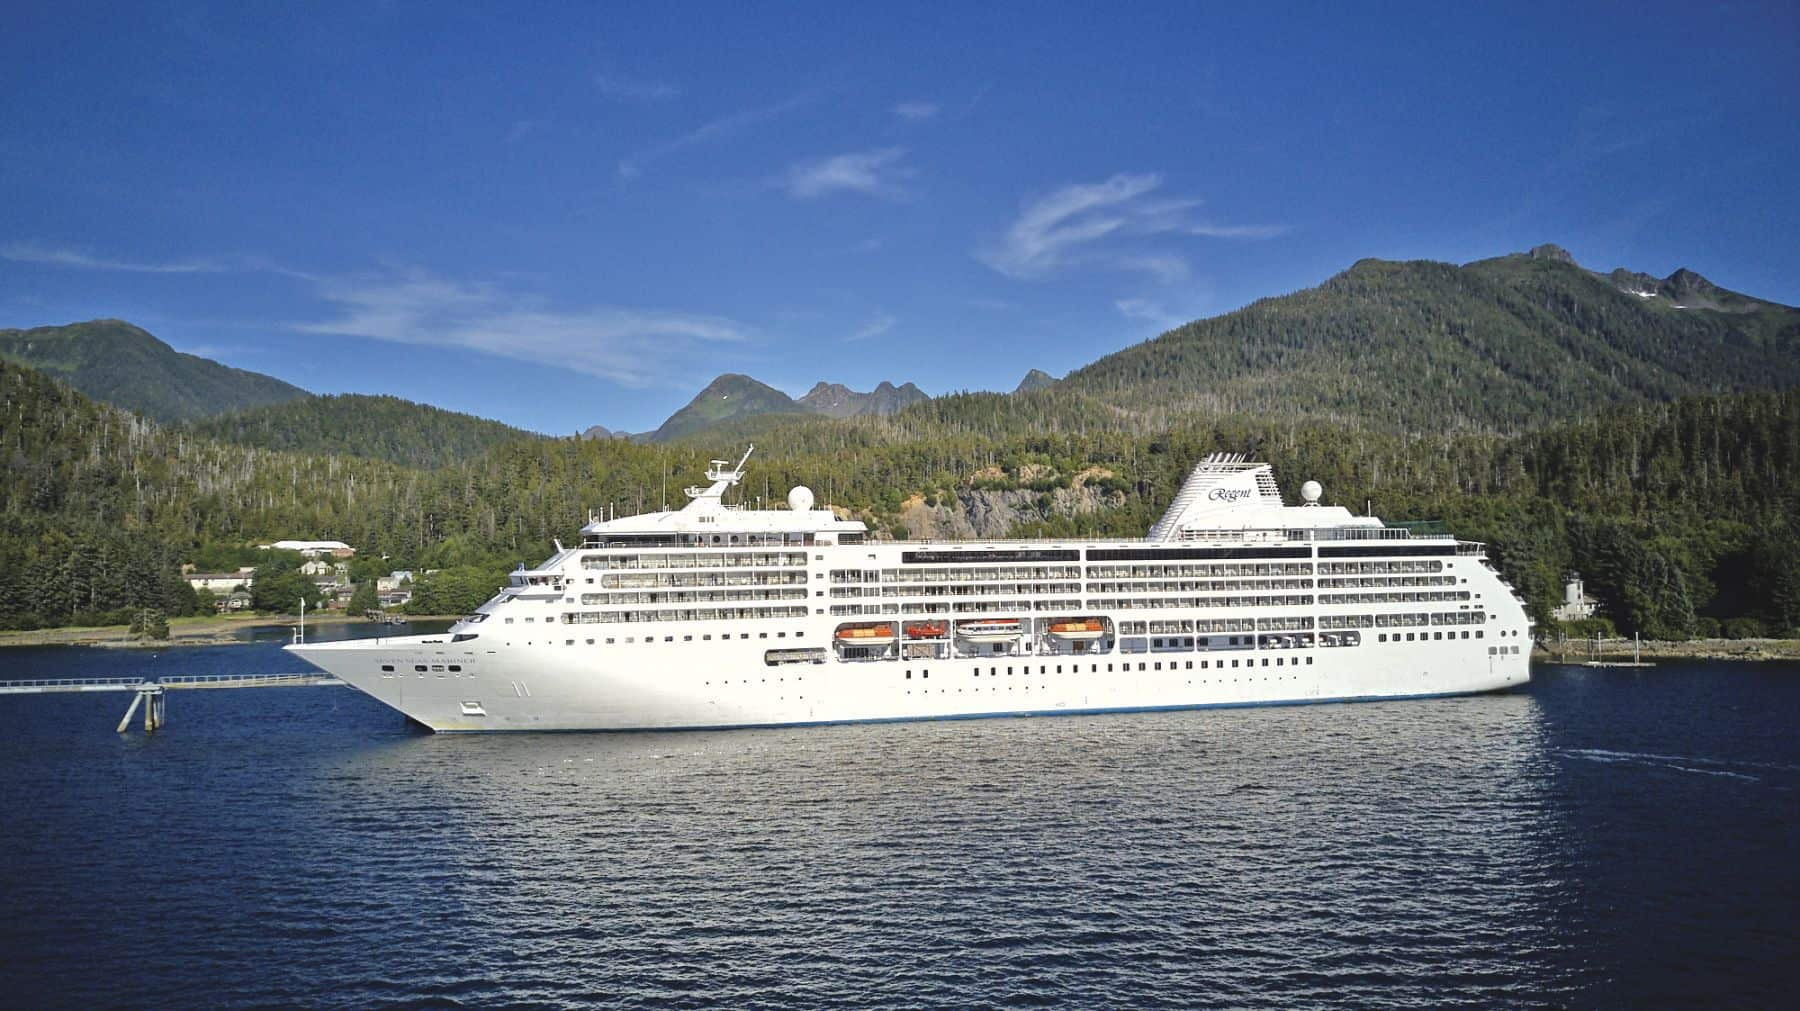 World Cruise on the Seven Seas Mariner